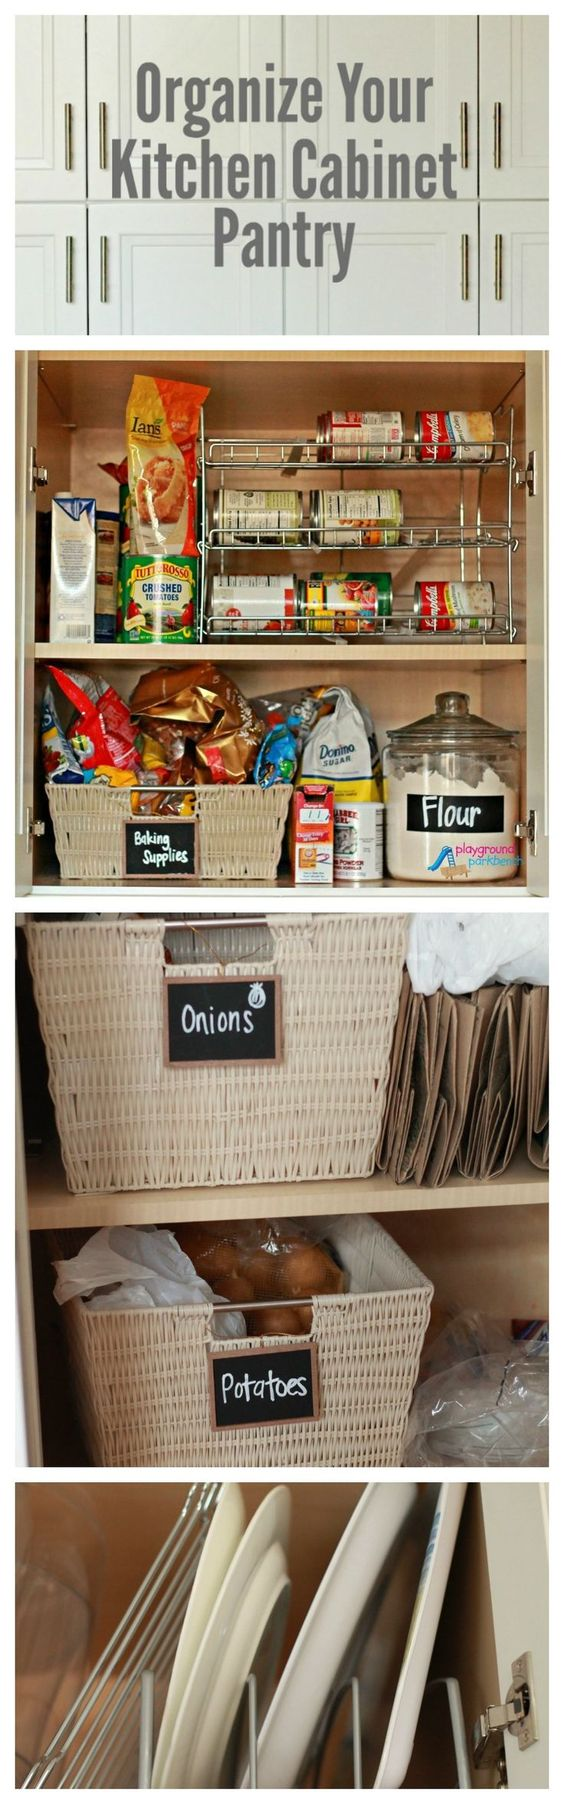 Organize your pantry pantry storage and cabinets Maximize kitchen storage